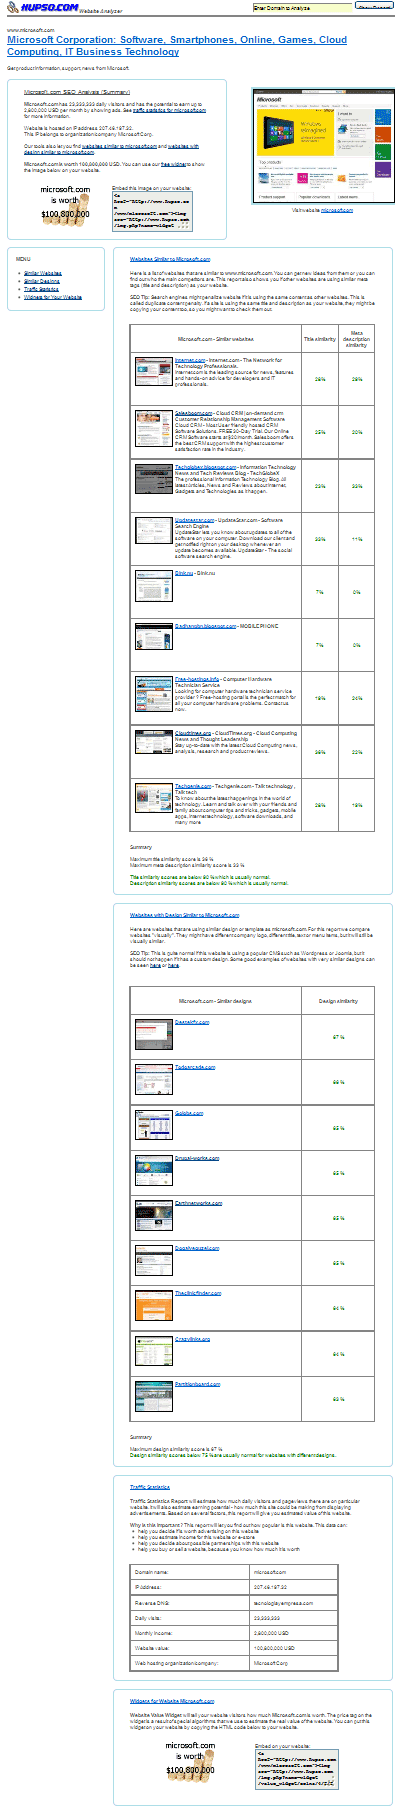 Screenshot of Website Report for Microsoft.com